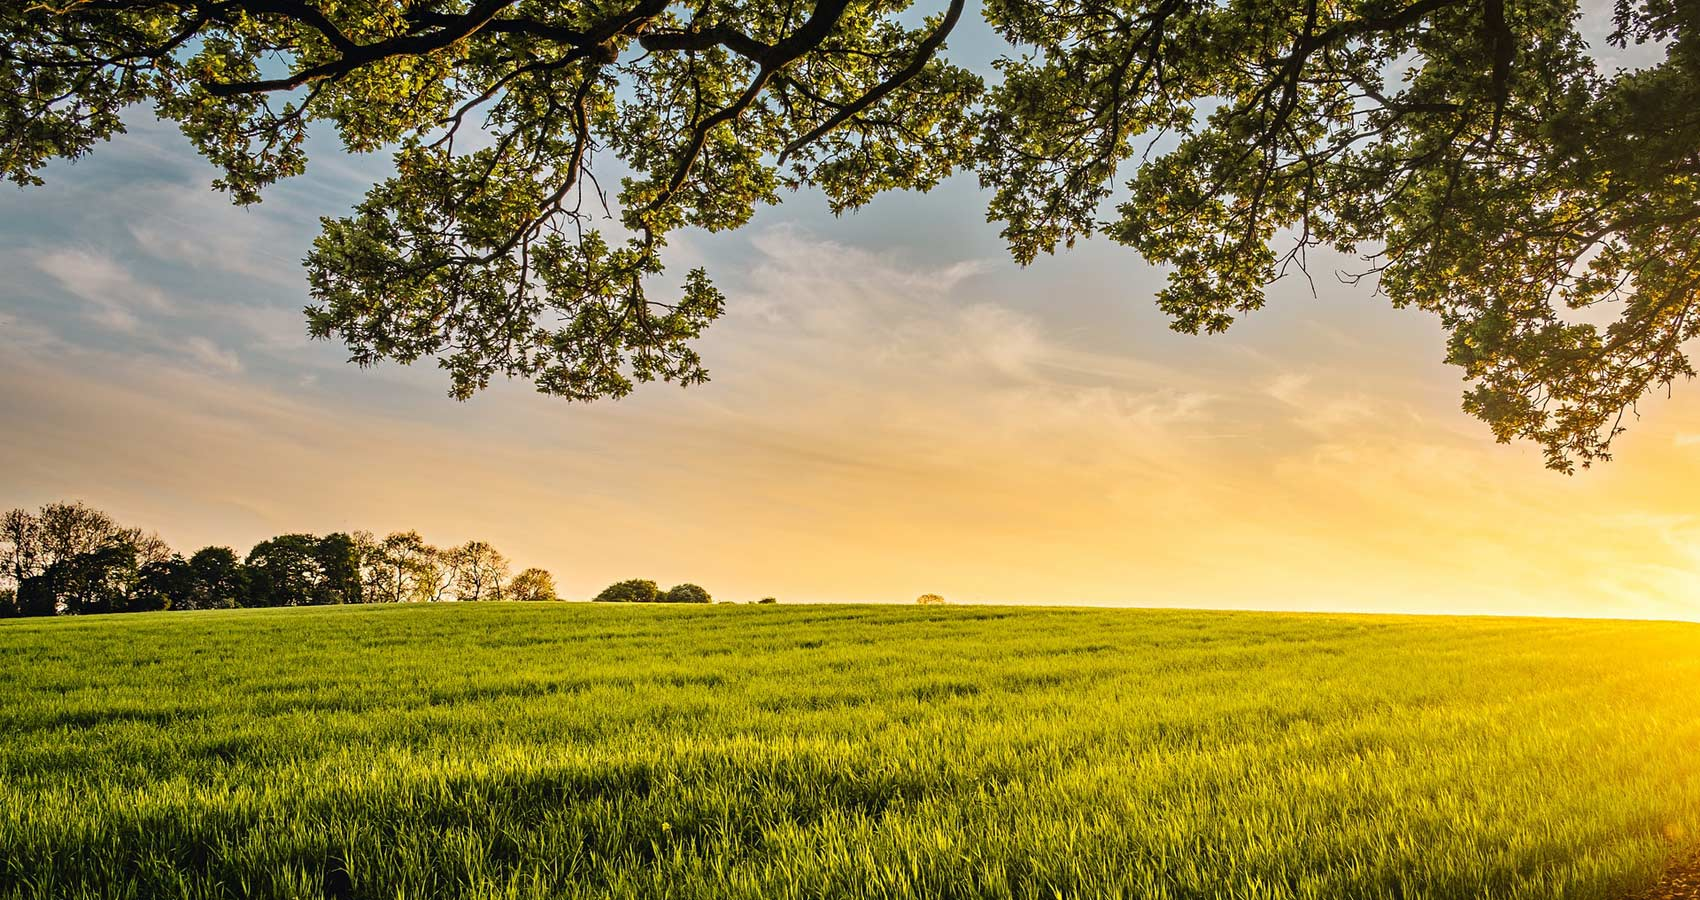 Rural Reflections, a poem by Adrienne Rich at Spillwords.com